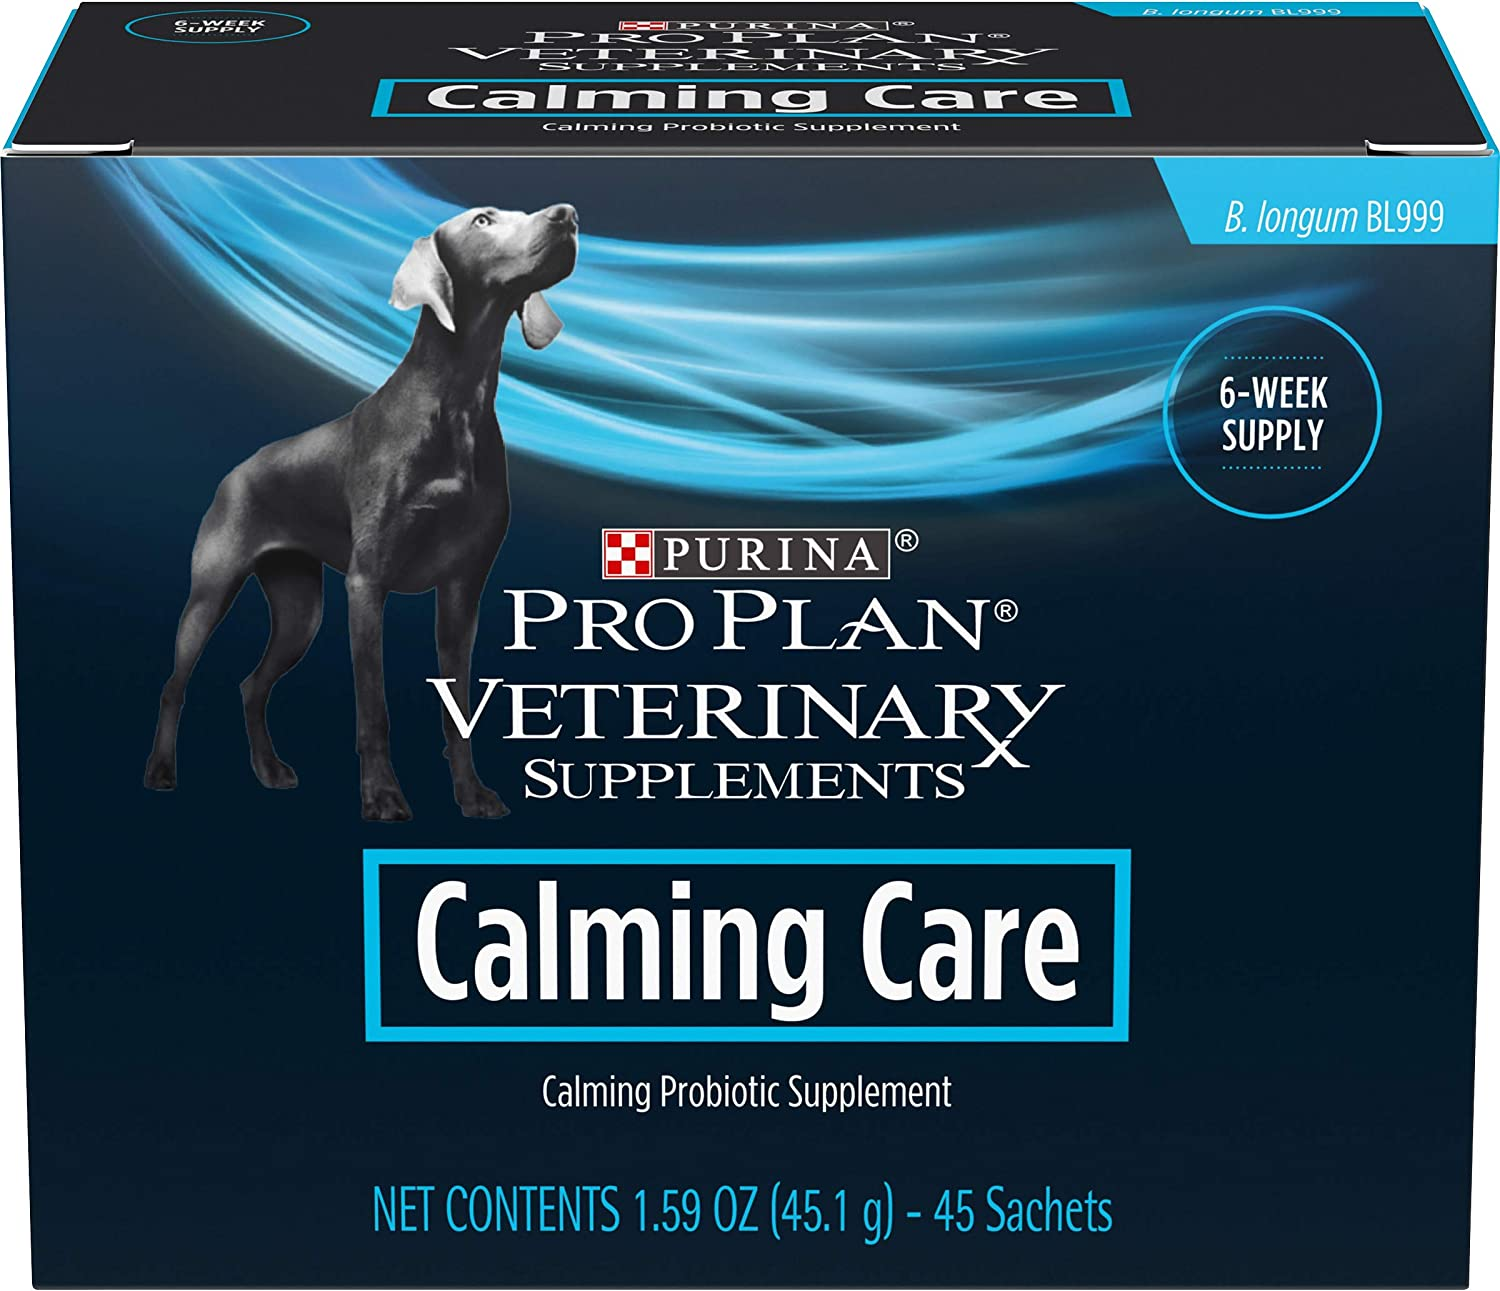 Purina Pro Purchase Plan Safety and trust Veterinary Supplements Calming Formu Canine Care